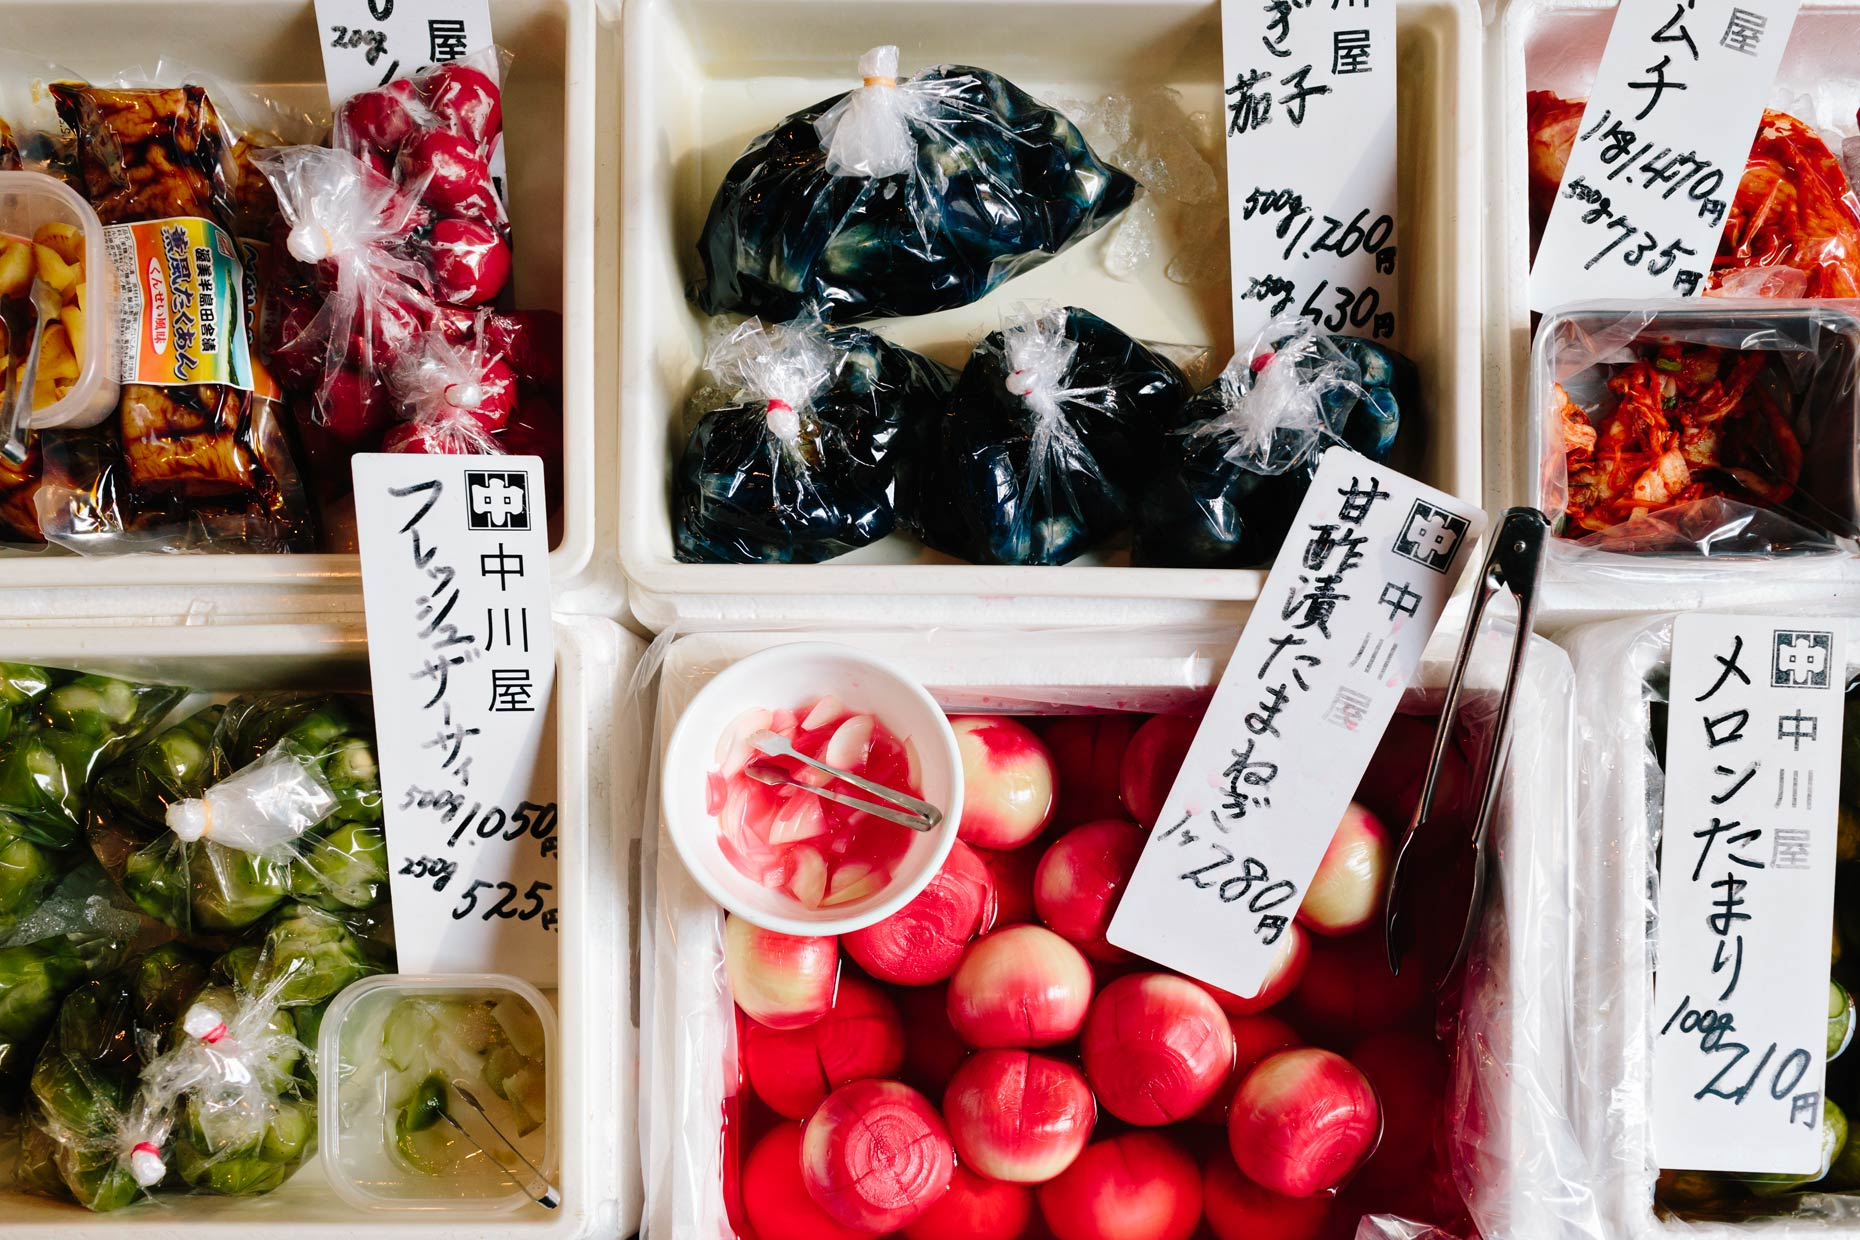 Pickled veg - Tsukiji - Japan - Kristin Teig